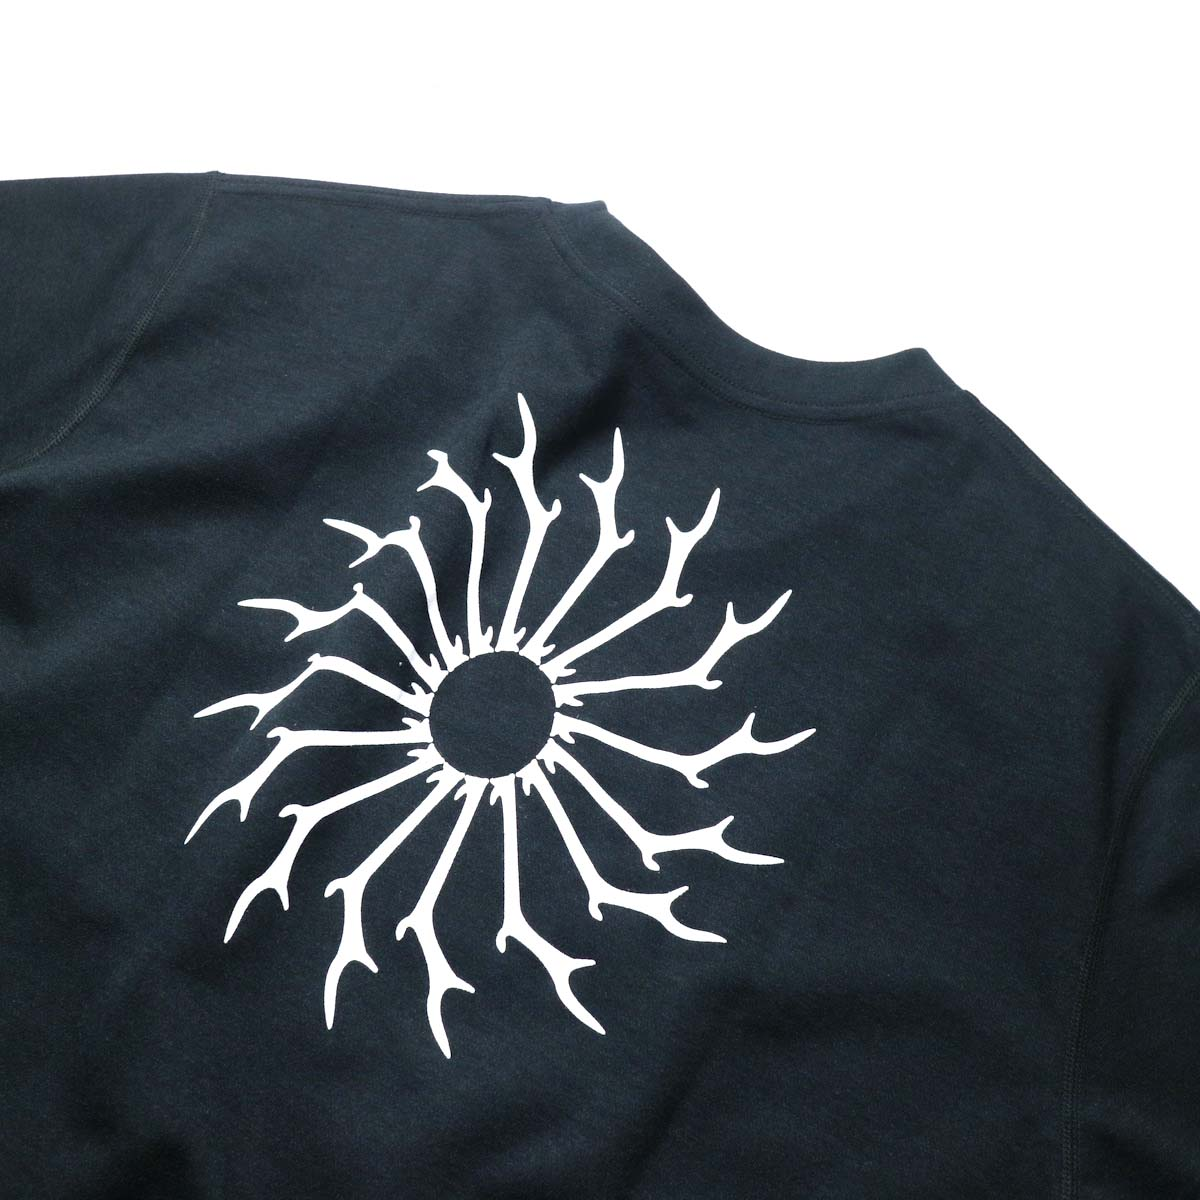 South2 West8 / S/S ROUND POCKET TEE - CIRCLE HORN (Black)プリント